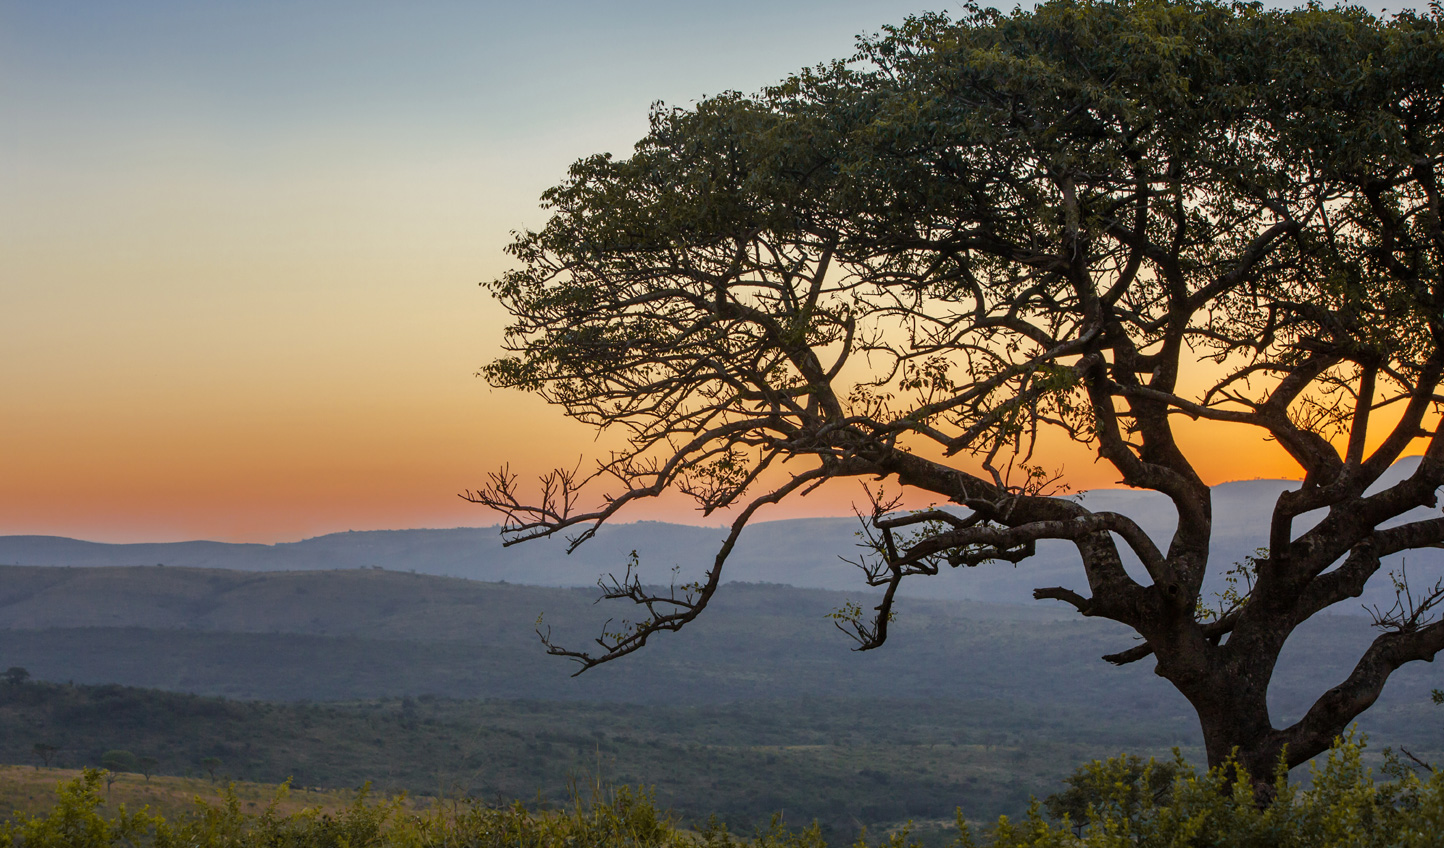 End your trip amid the natural beauty of KawZulu Natal